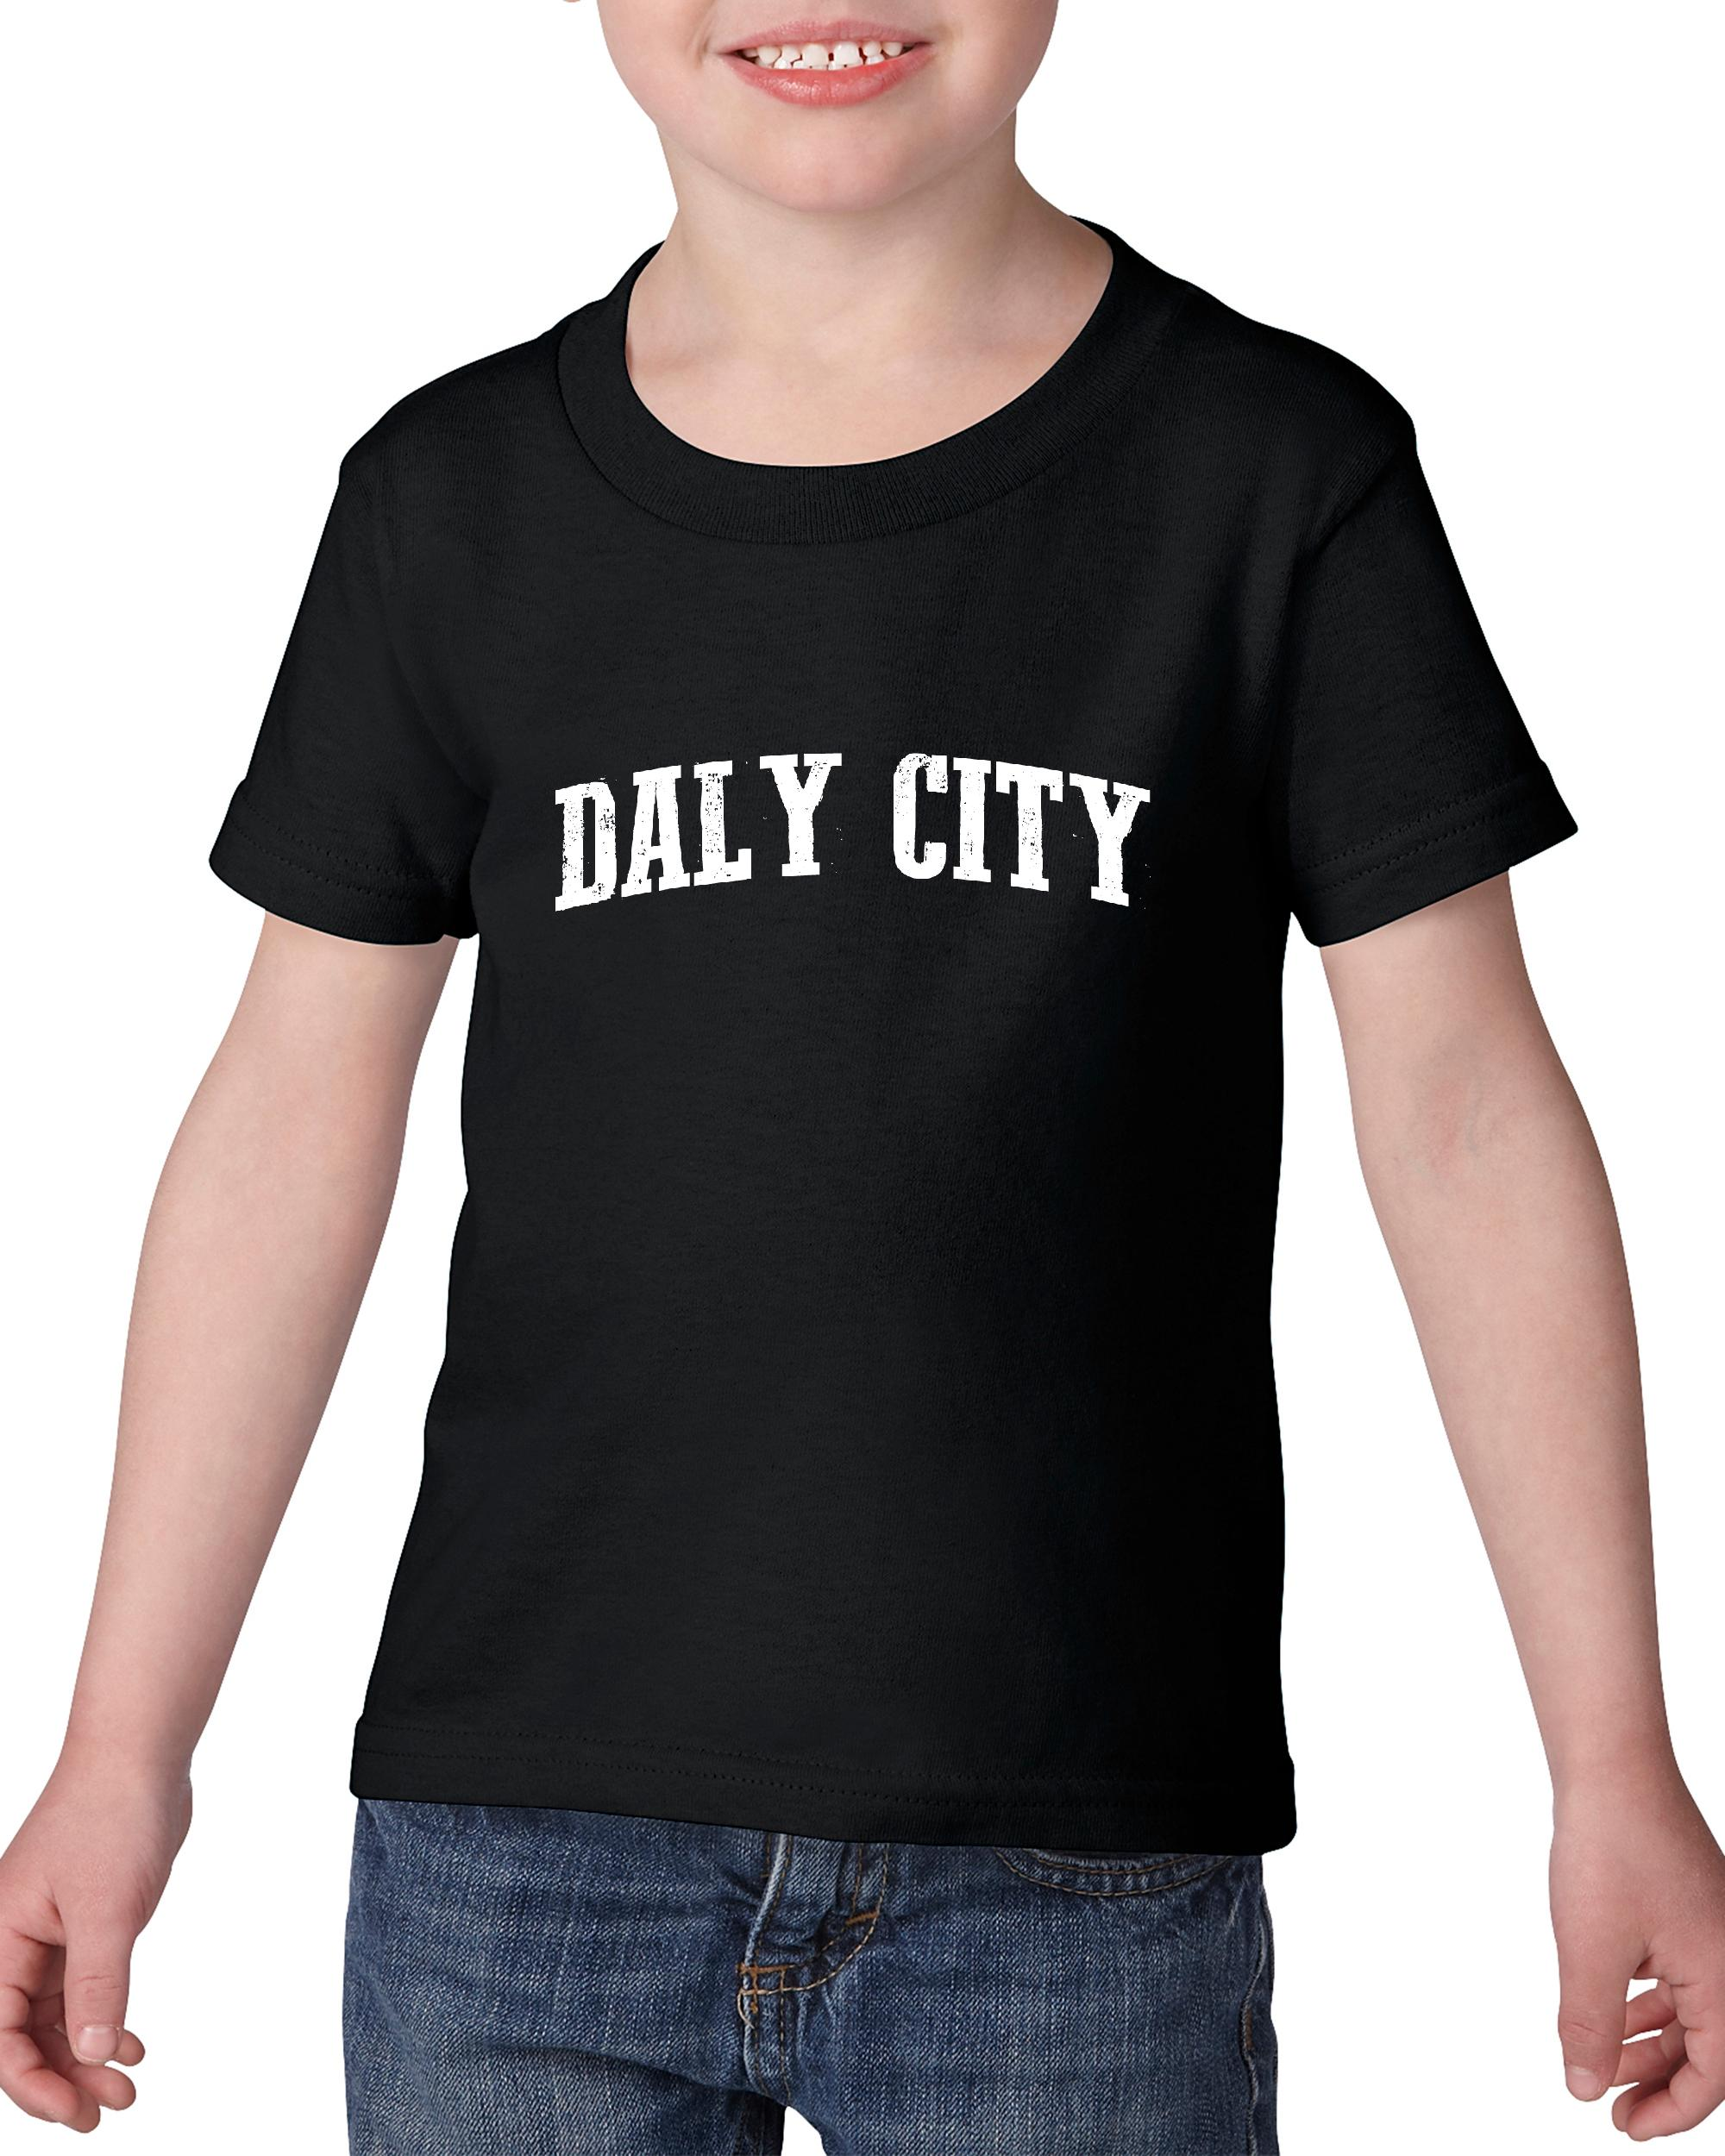 Artix Daly City CA California Map Flag Home of University of Los Angeles UCLA USC CSLA Heavy Cotton Toddler Kids T-Shirt Tee Clothing